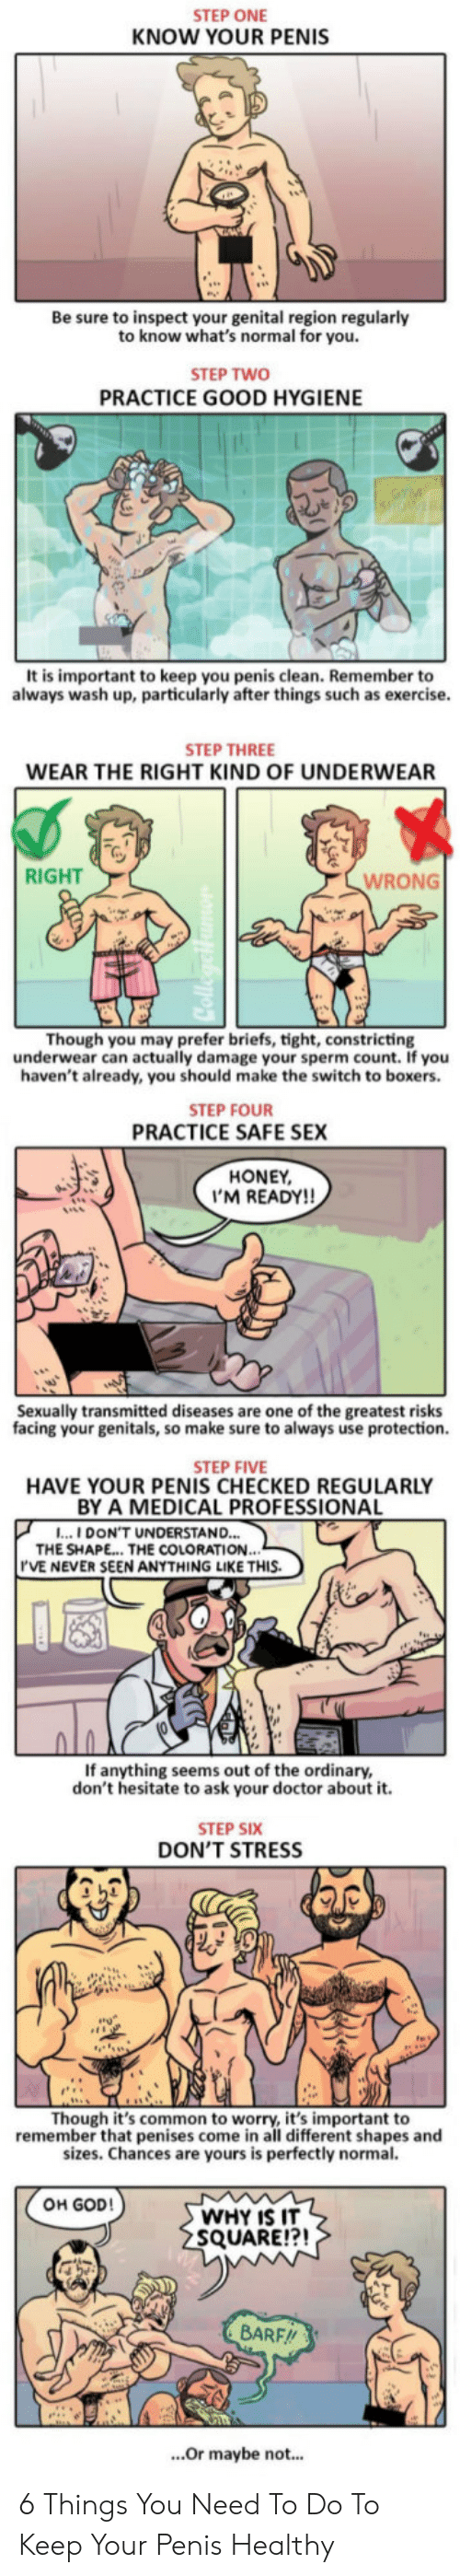 Doctor, God, and Sex: STEP ONE  KNOW YOUR PENIS  Be sure to inspect your genital region regularly  to know what's normal for you.  STEP TWO  PRACTICE GOOD HYGIENE  It is important to keep you penis clean. Remember to  always wash up, particularly after things such as exercise.  STEP THREE  WEAR THE RIGHT KIND OF UNDERWEAR  RIGHT  WRONG  Though you may prefer briefs, tight, constricting  underwear can actually damage your sperm count. If you  haven't already, you should make the switch to boxers.  STEP FOUR  PRACTICE SAFE SEX  HONEY  'M READY!!  Sexually transmitted diseases are one of the greatest risks  facing your genitals, so make sure to always use protection.  STEP FIVE  HAVE YOUR PENIS CHECKED REGULARLY  BY A MEDICAL PROFESSIONA  ...I DON'T UNDERSTAND...  THE SHAPE... THE COLORATION.  'VE NEVER SEEN ANYTHING LIKE THIS.  If anything seems out of the ordinary,  don't hesitate to ask your doctor about it.  STEP SIX  DON'T STRESS  Though it's common to worry, it's important to  remember that penises come in all different shapes and  sizes. Chances are yours is perfectly normal.  OH GOD!  WHY IS IT  SQUARE!?!  BARF//  ...Or maybe not... 6 Things You Need To Do To Keep Your Penis Healthy